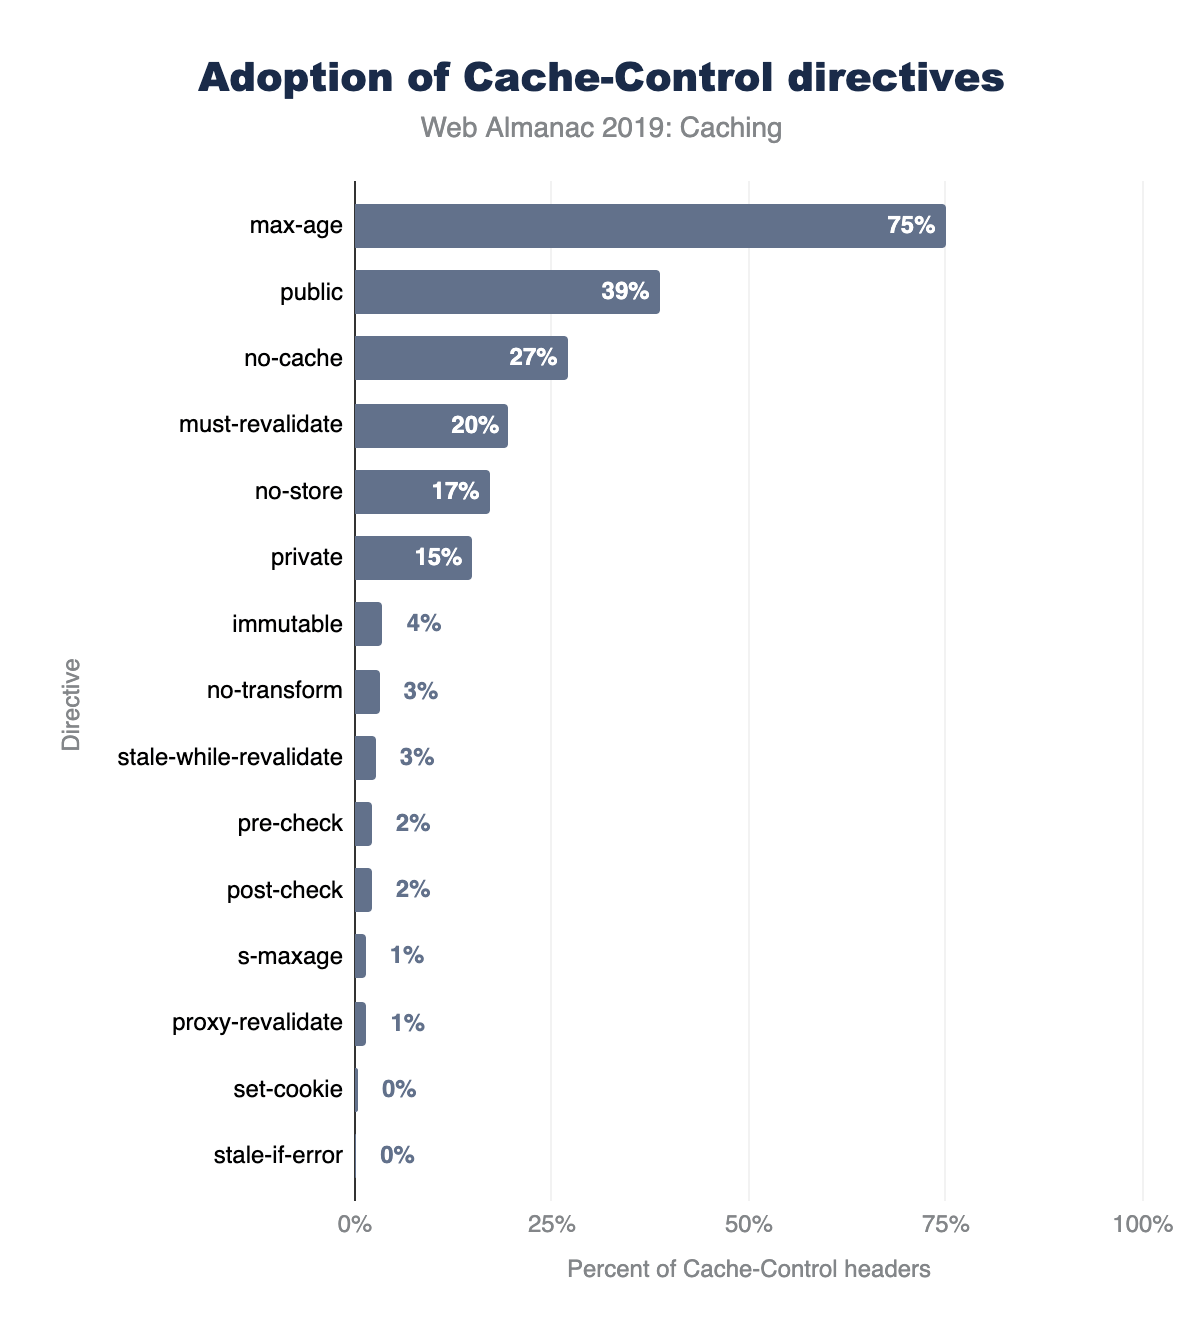 Usage of Cache-Control directives on mobile.